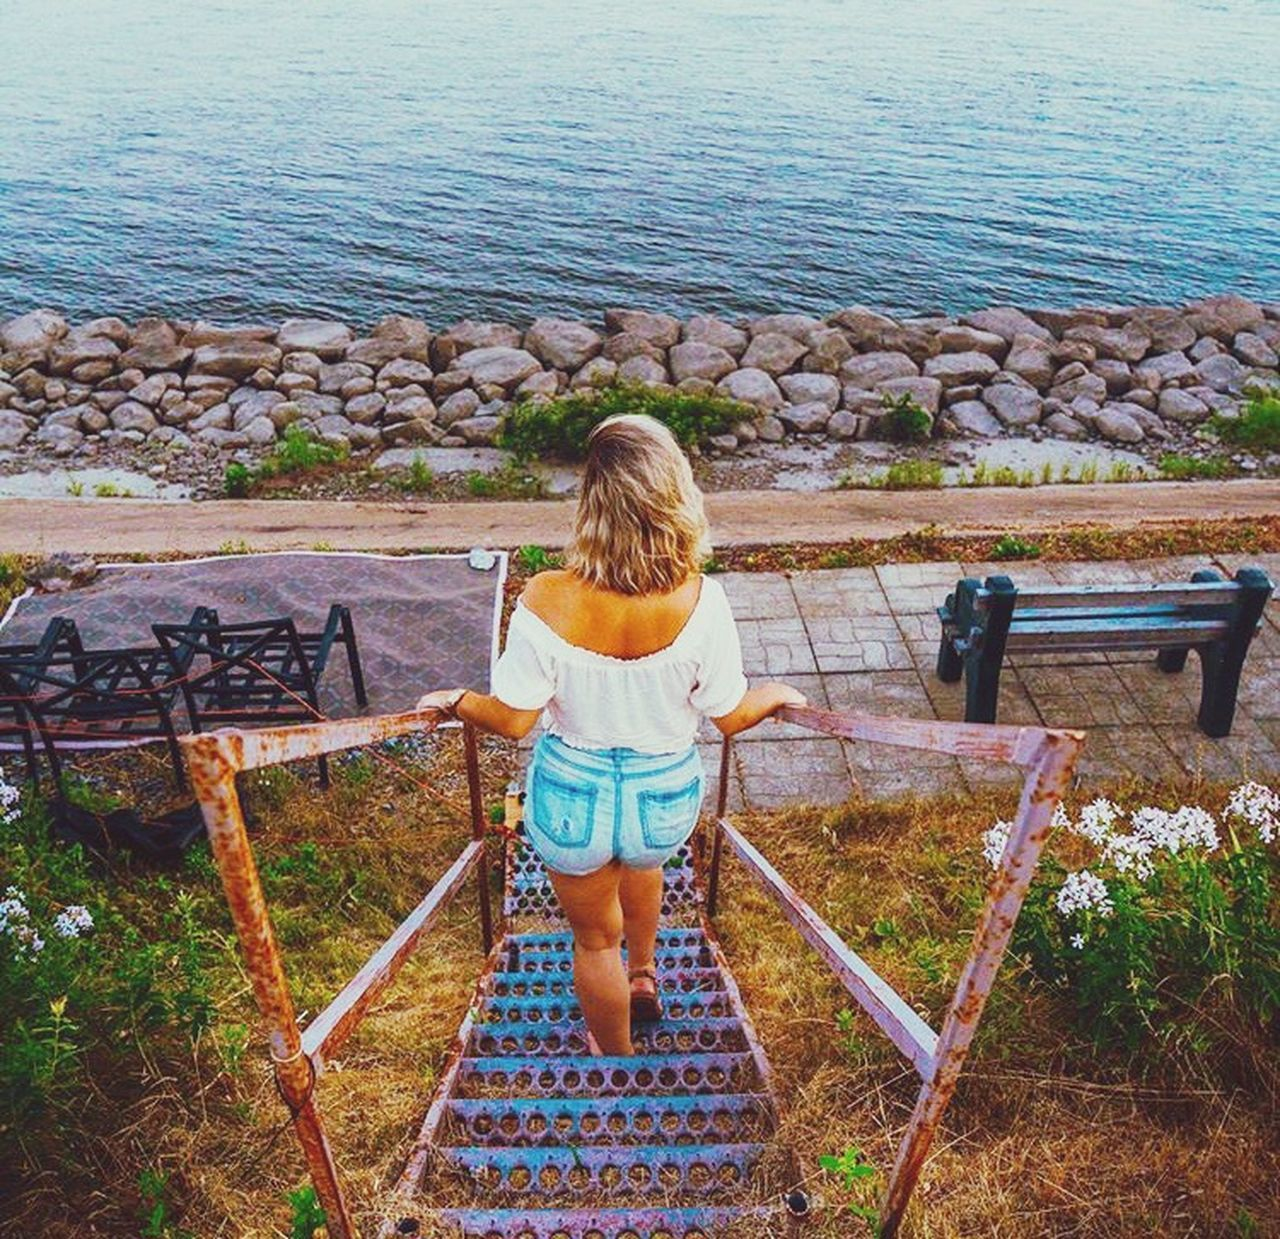 FULL LENGTH REAR VIEW OF WOMAN STANDING ON SEAT BY SEA